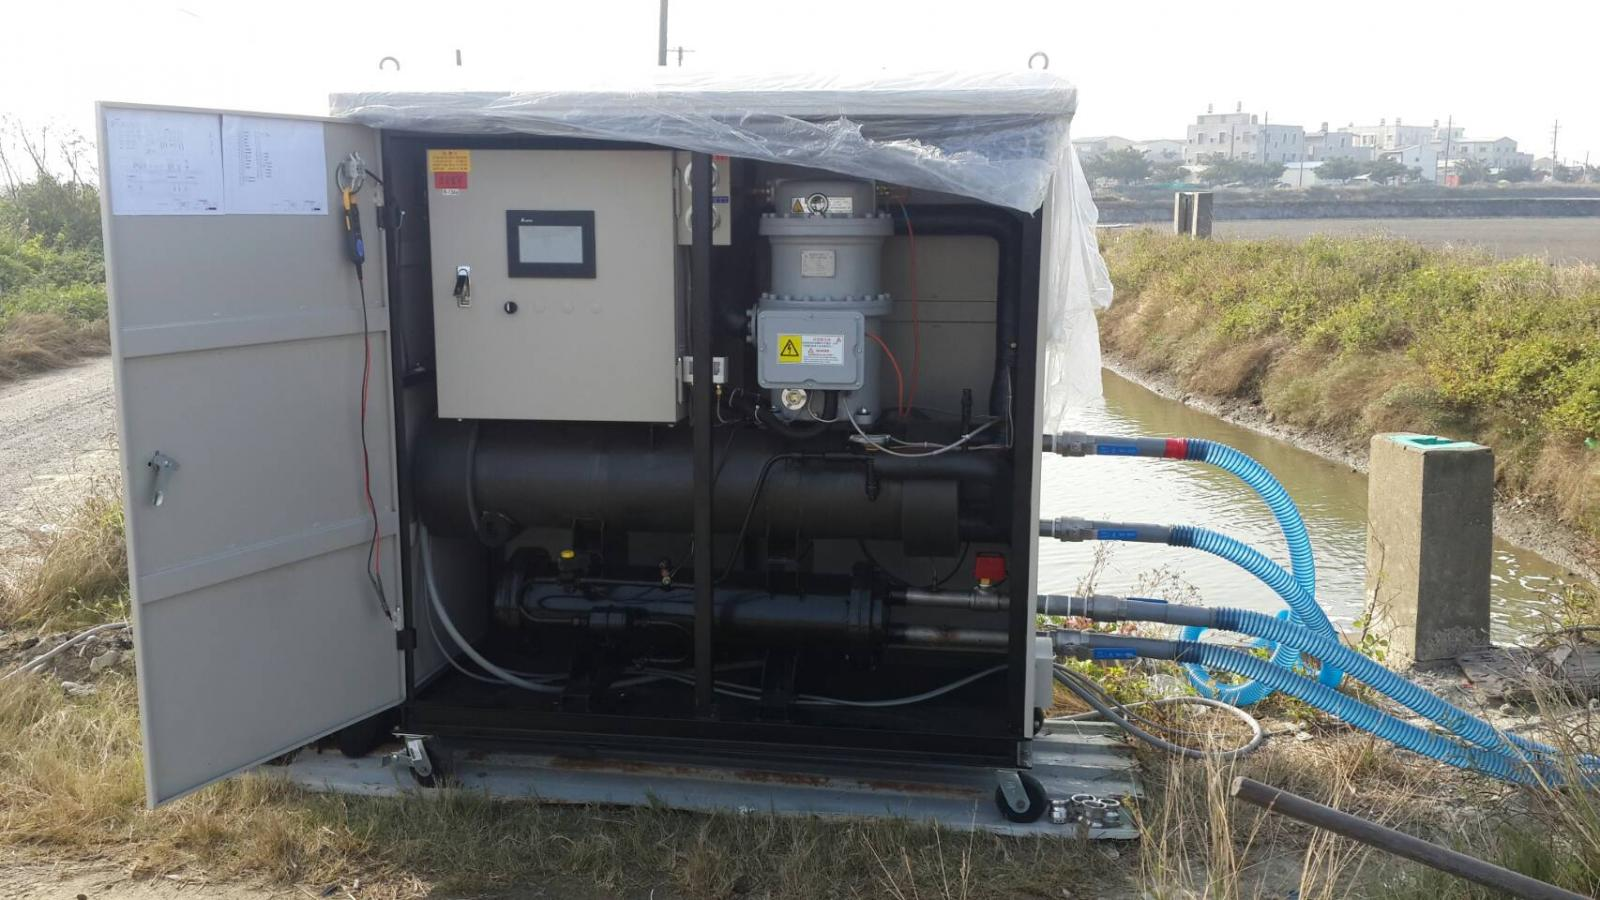 The heat pump used in the field experiment aims to assist fish farm against cold weather.